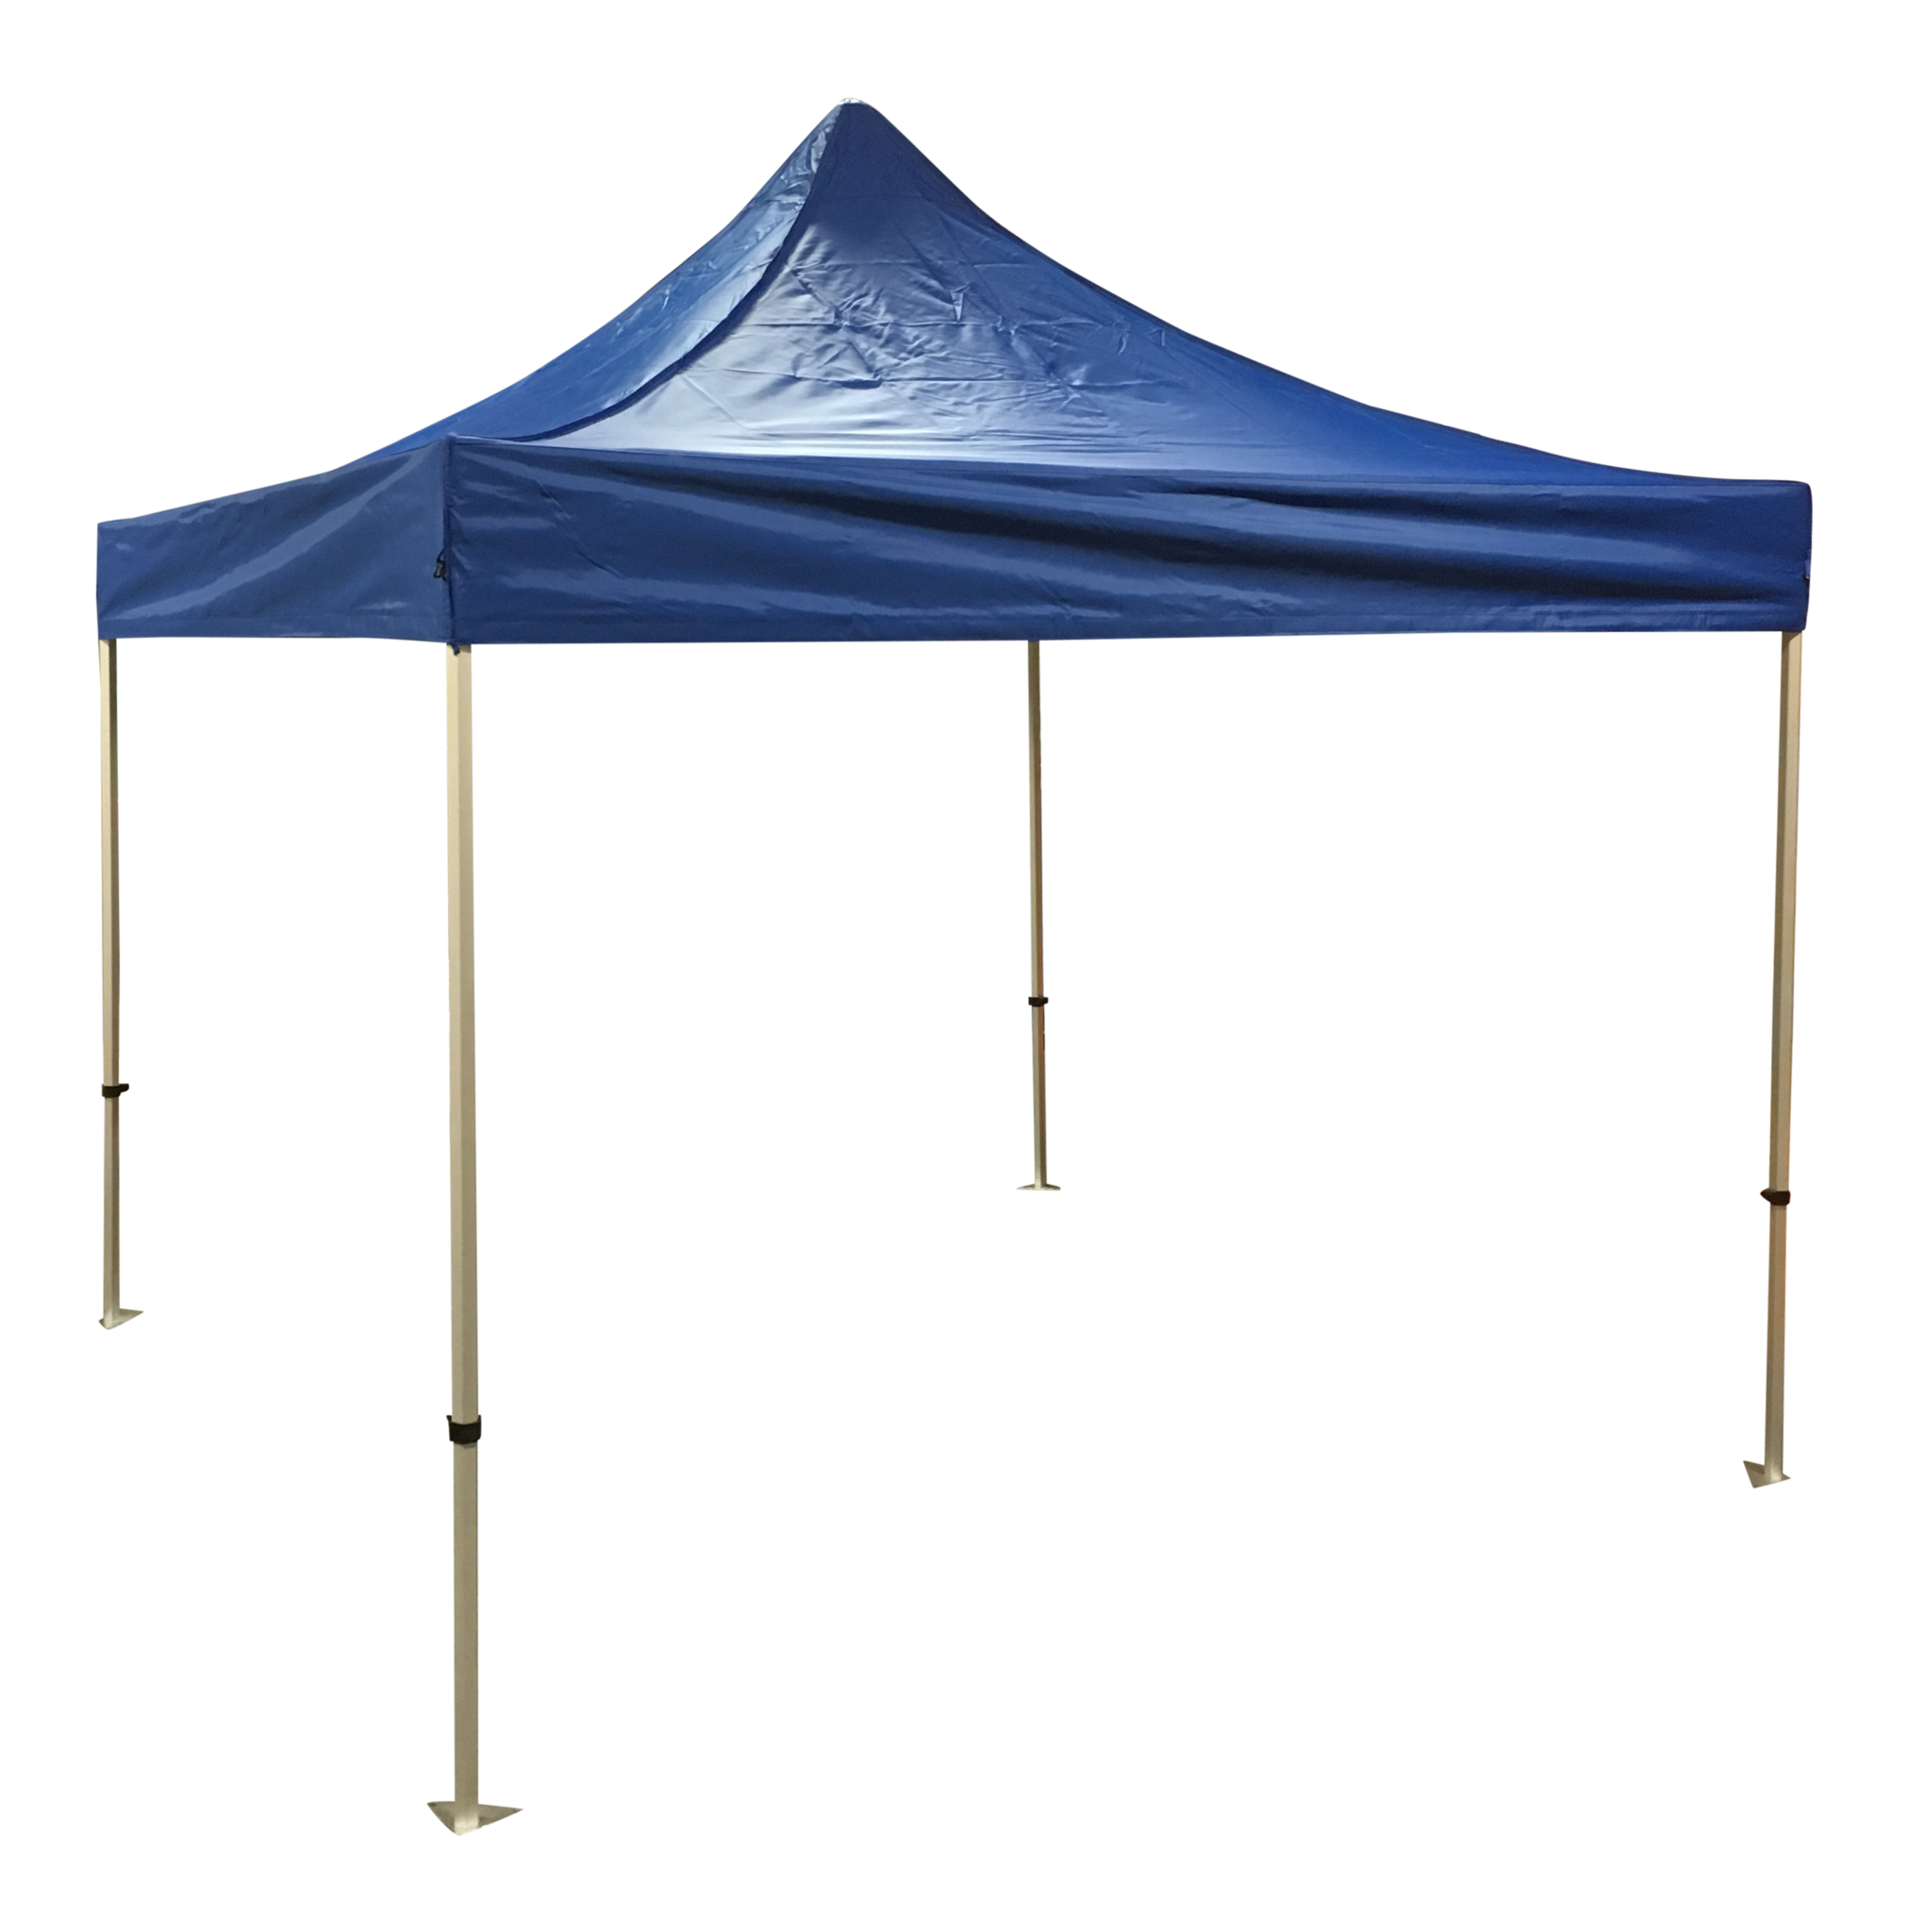 Vendor canopy Tent - Blue ...  sc 1 st  AirDancers.ca & Economy 10x10 Solid Colour Canopy Tent Package - Blue u2013 AirDancers.ca